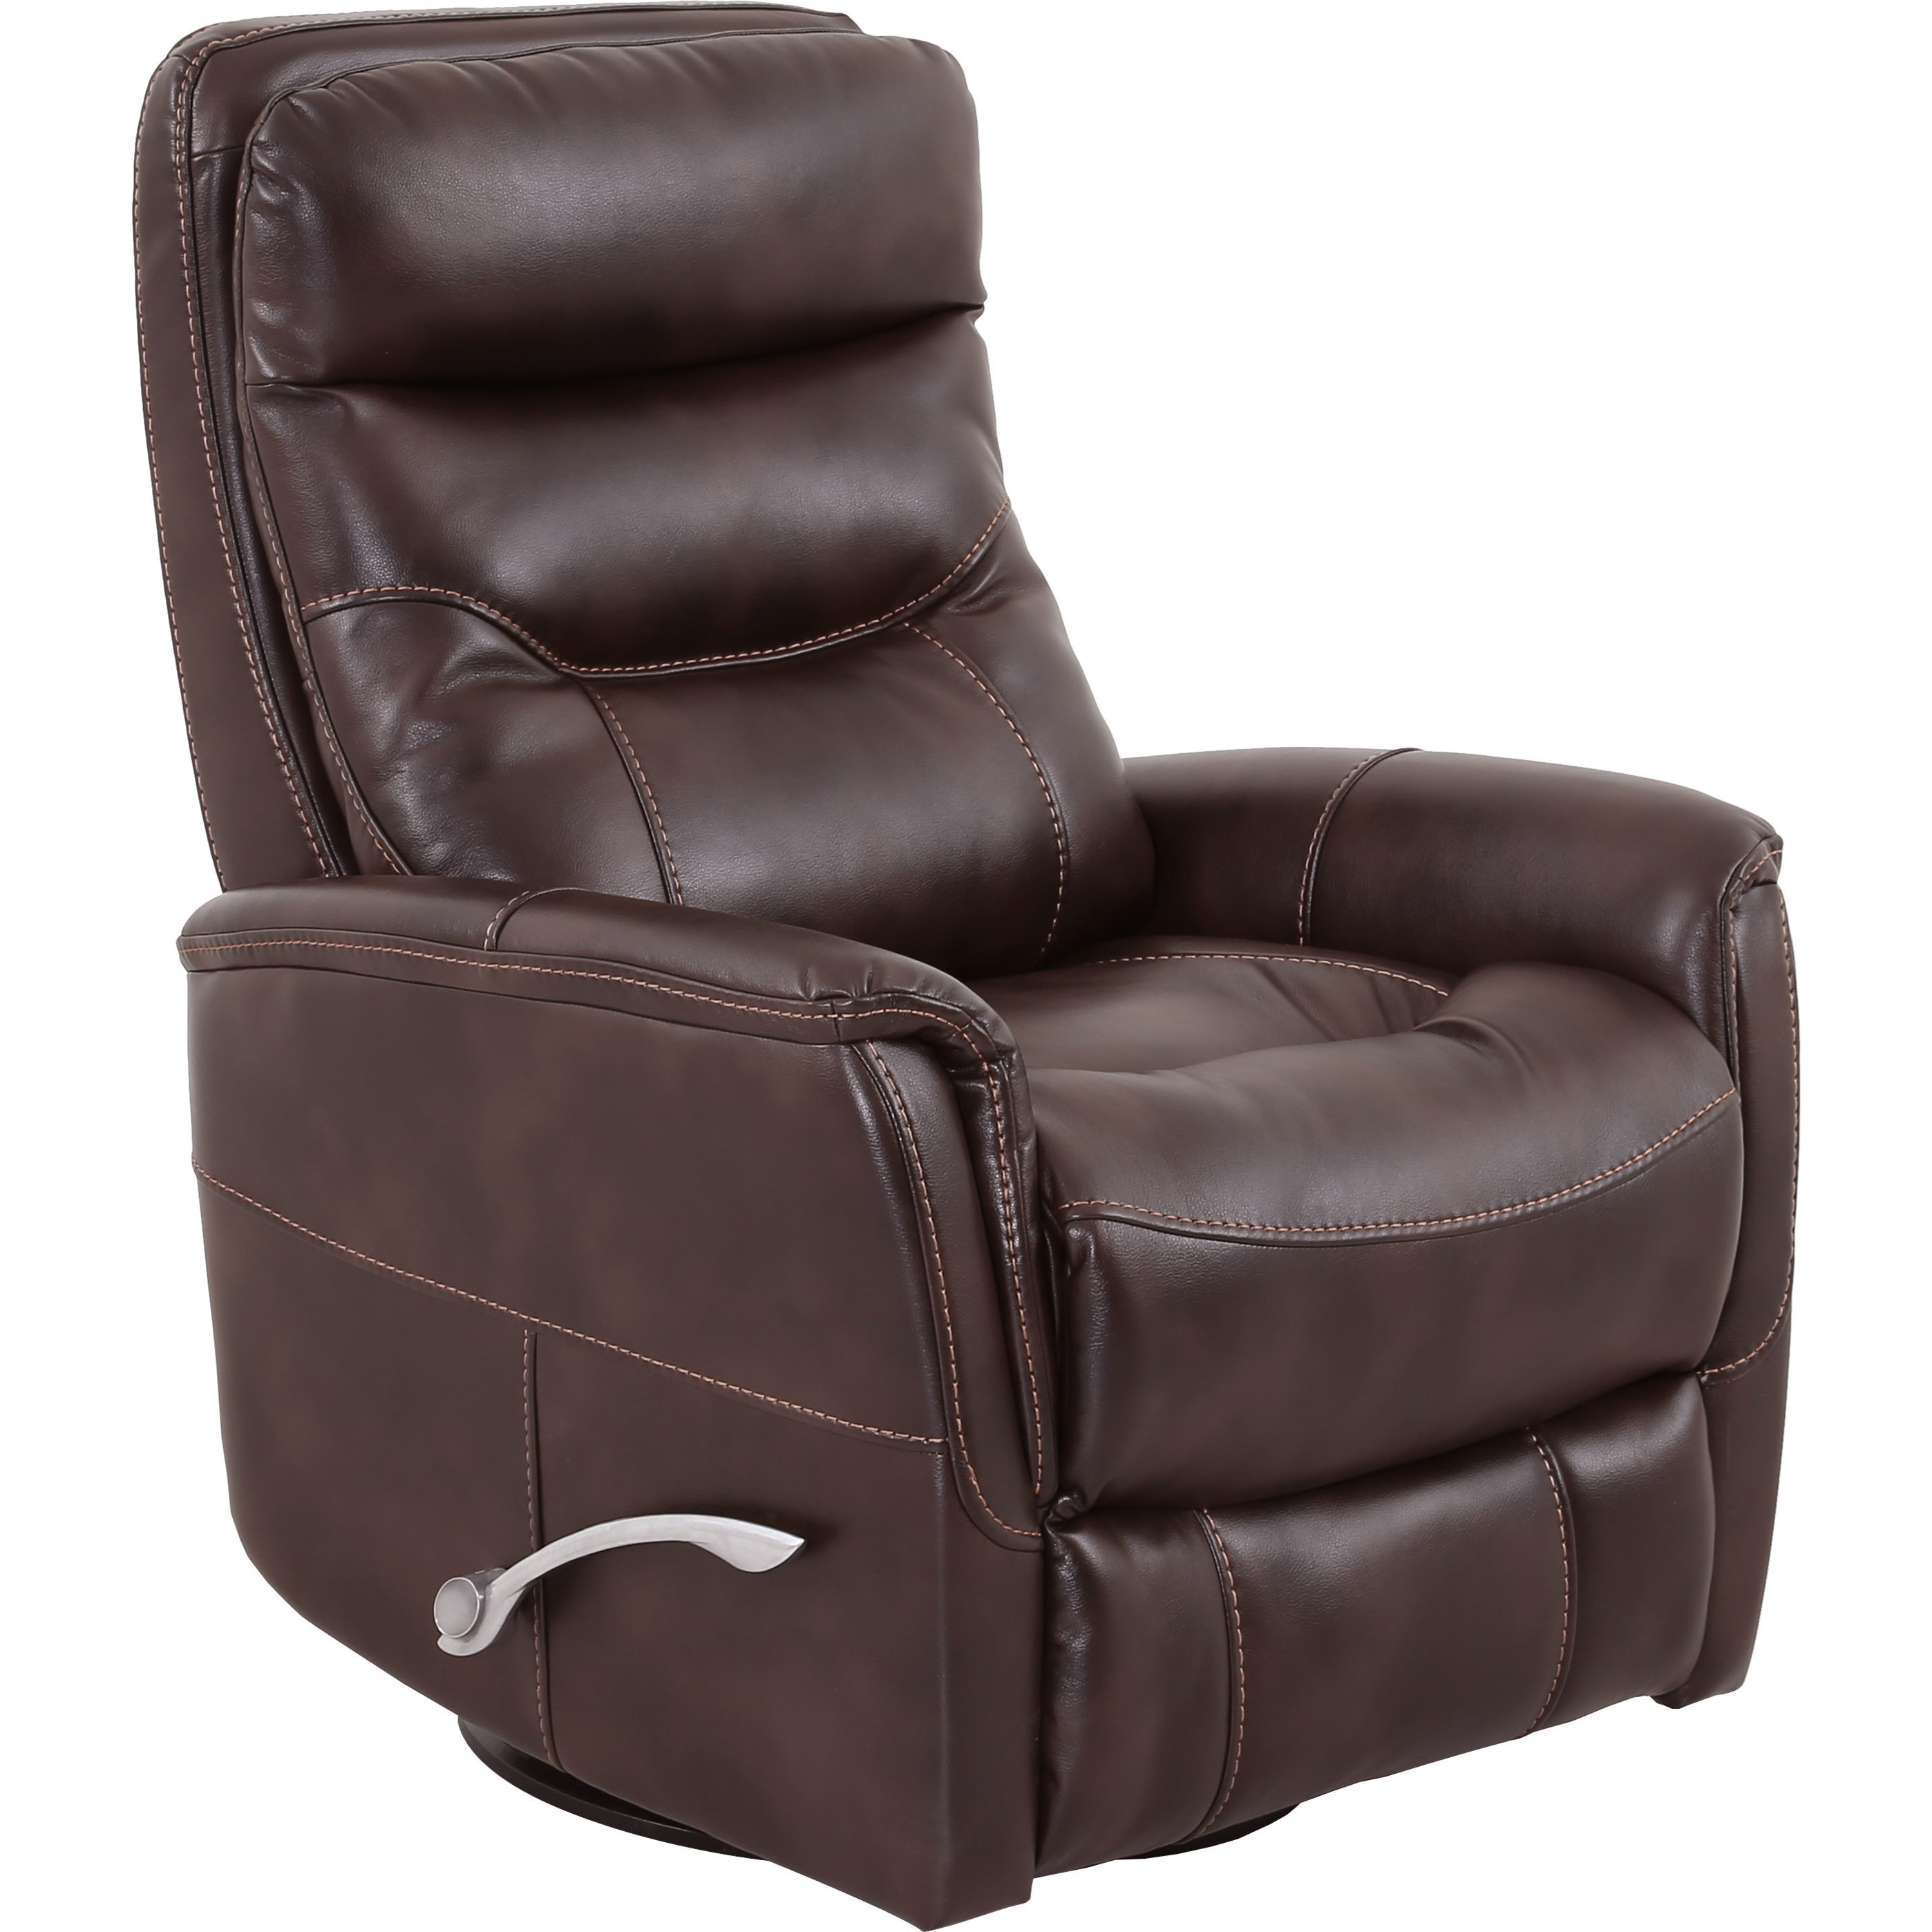 Gemini Swivel Glider Recliner by Parker Living at Rife's Home Furniture